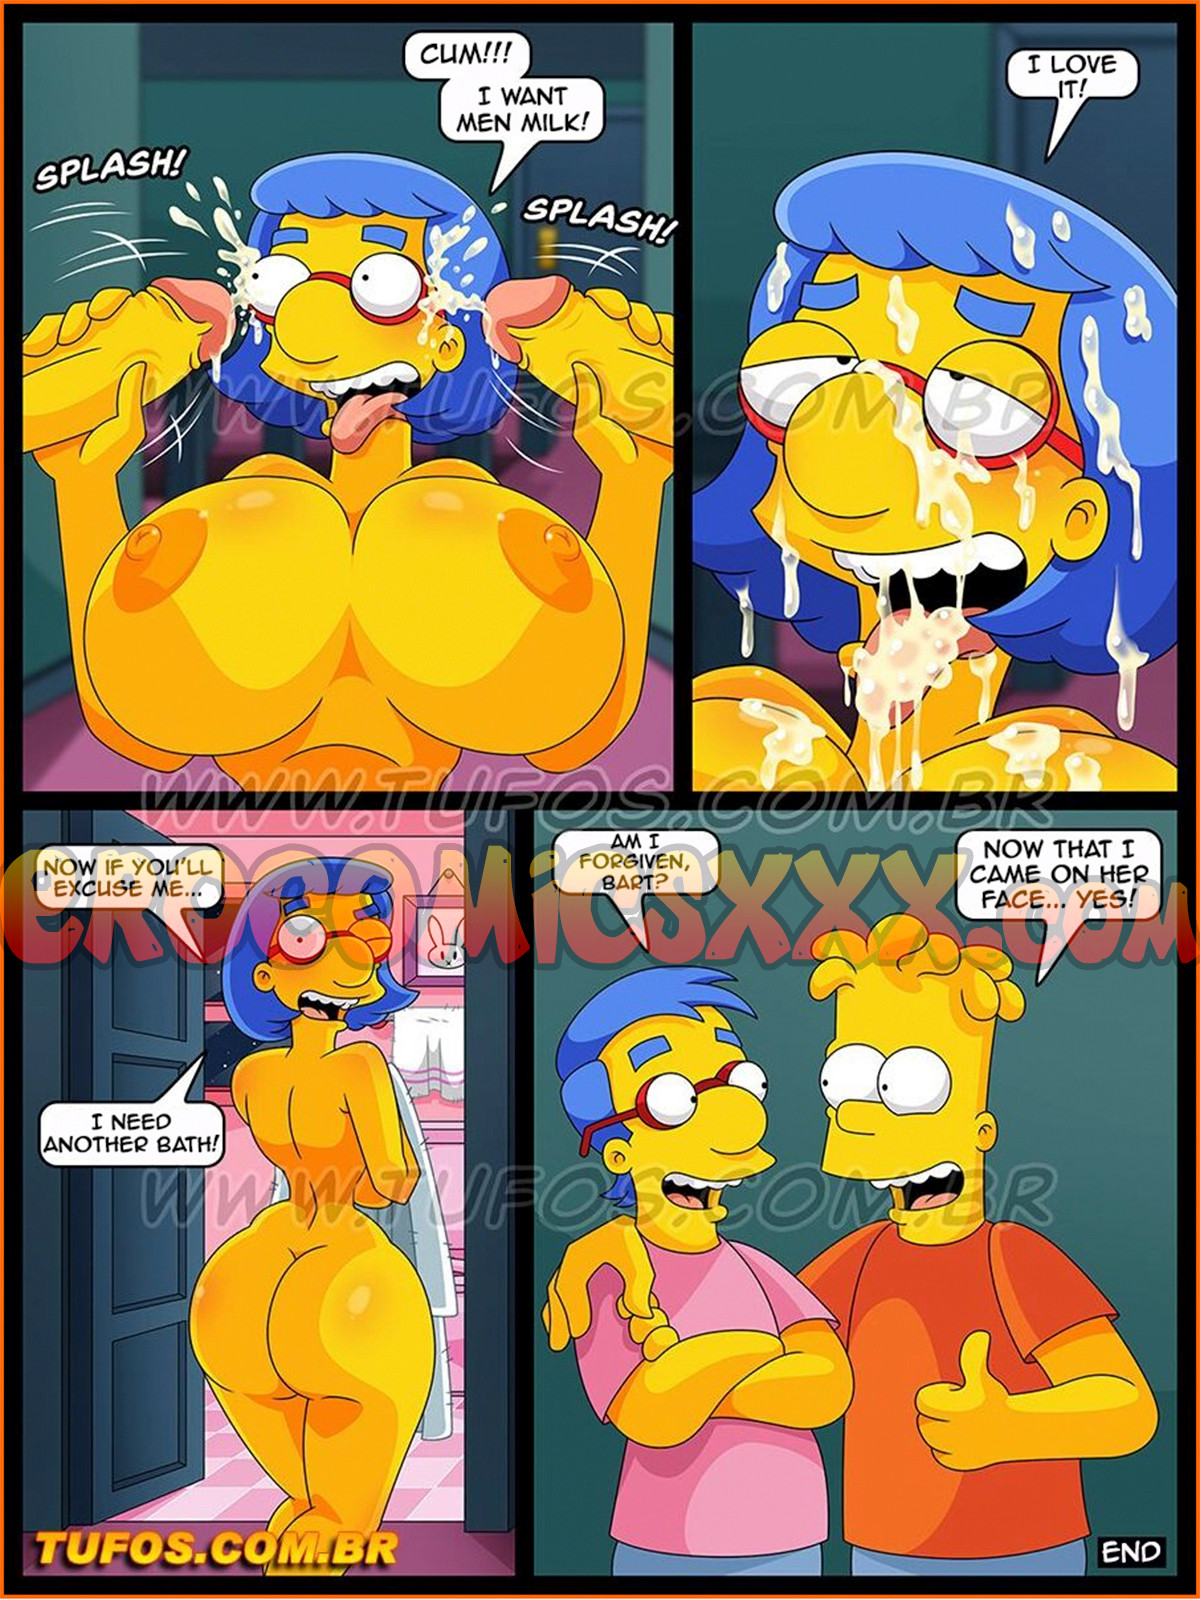 014 1 - The Simpsons 27. The Collection of Porn Magazines.